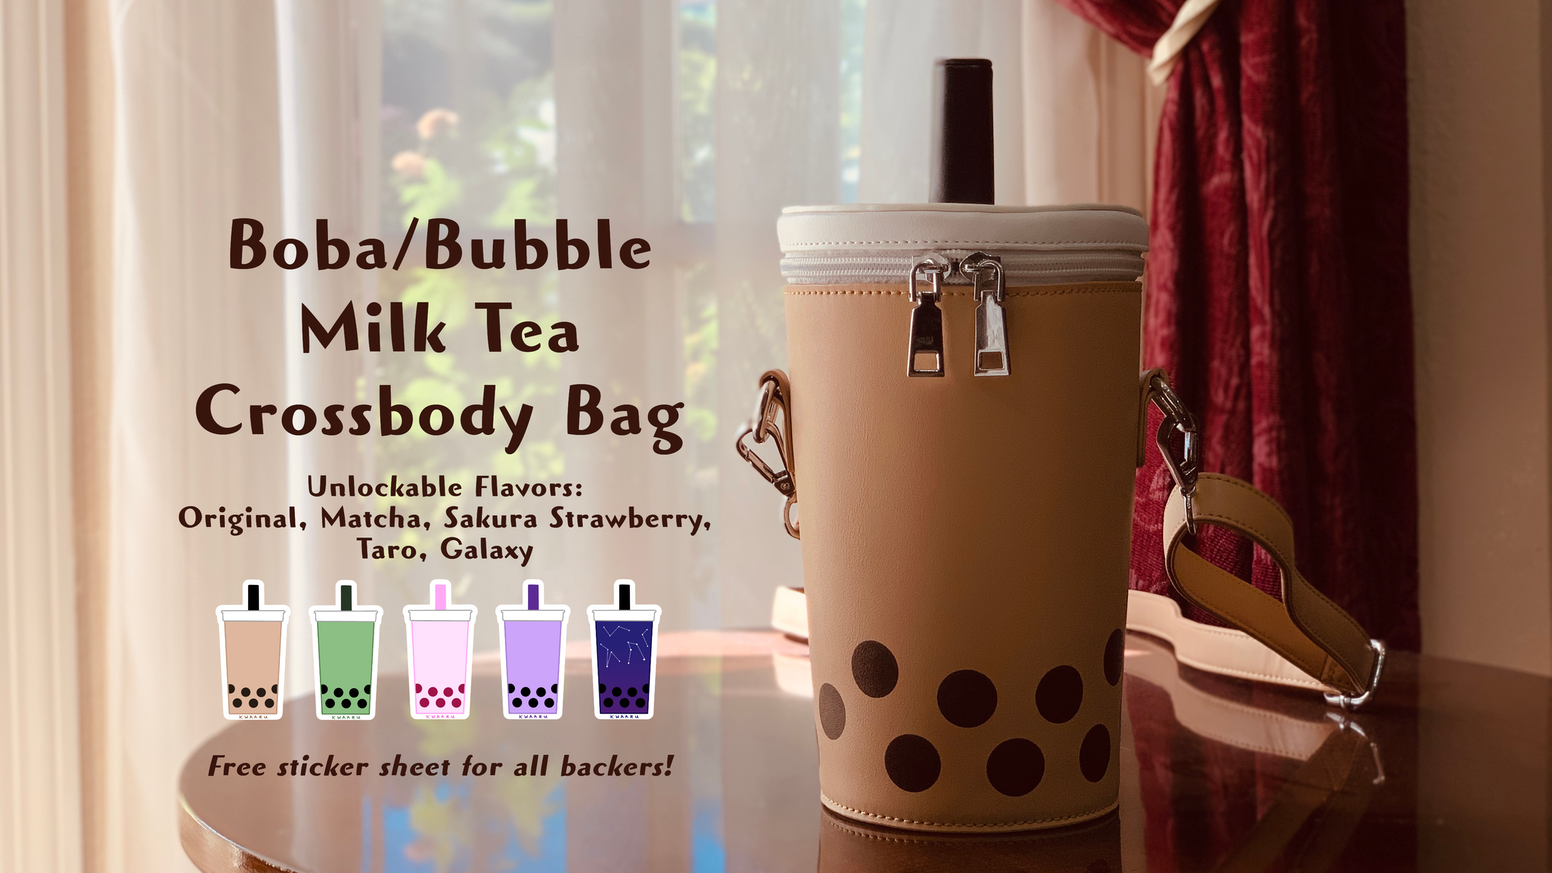 A cute boba/bubble milk tea crossbody/shoulder bag, suitable for carrying your everyday items or your drink!